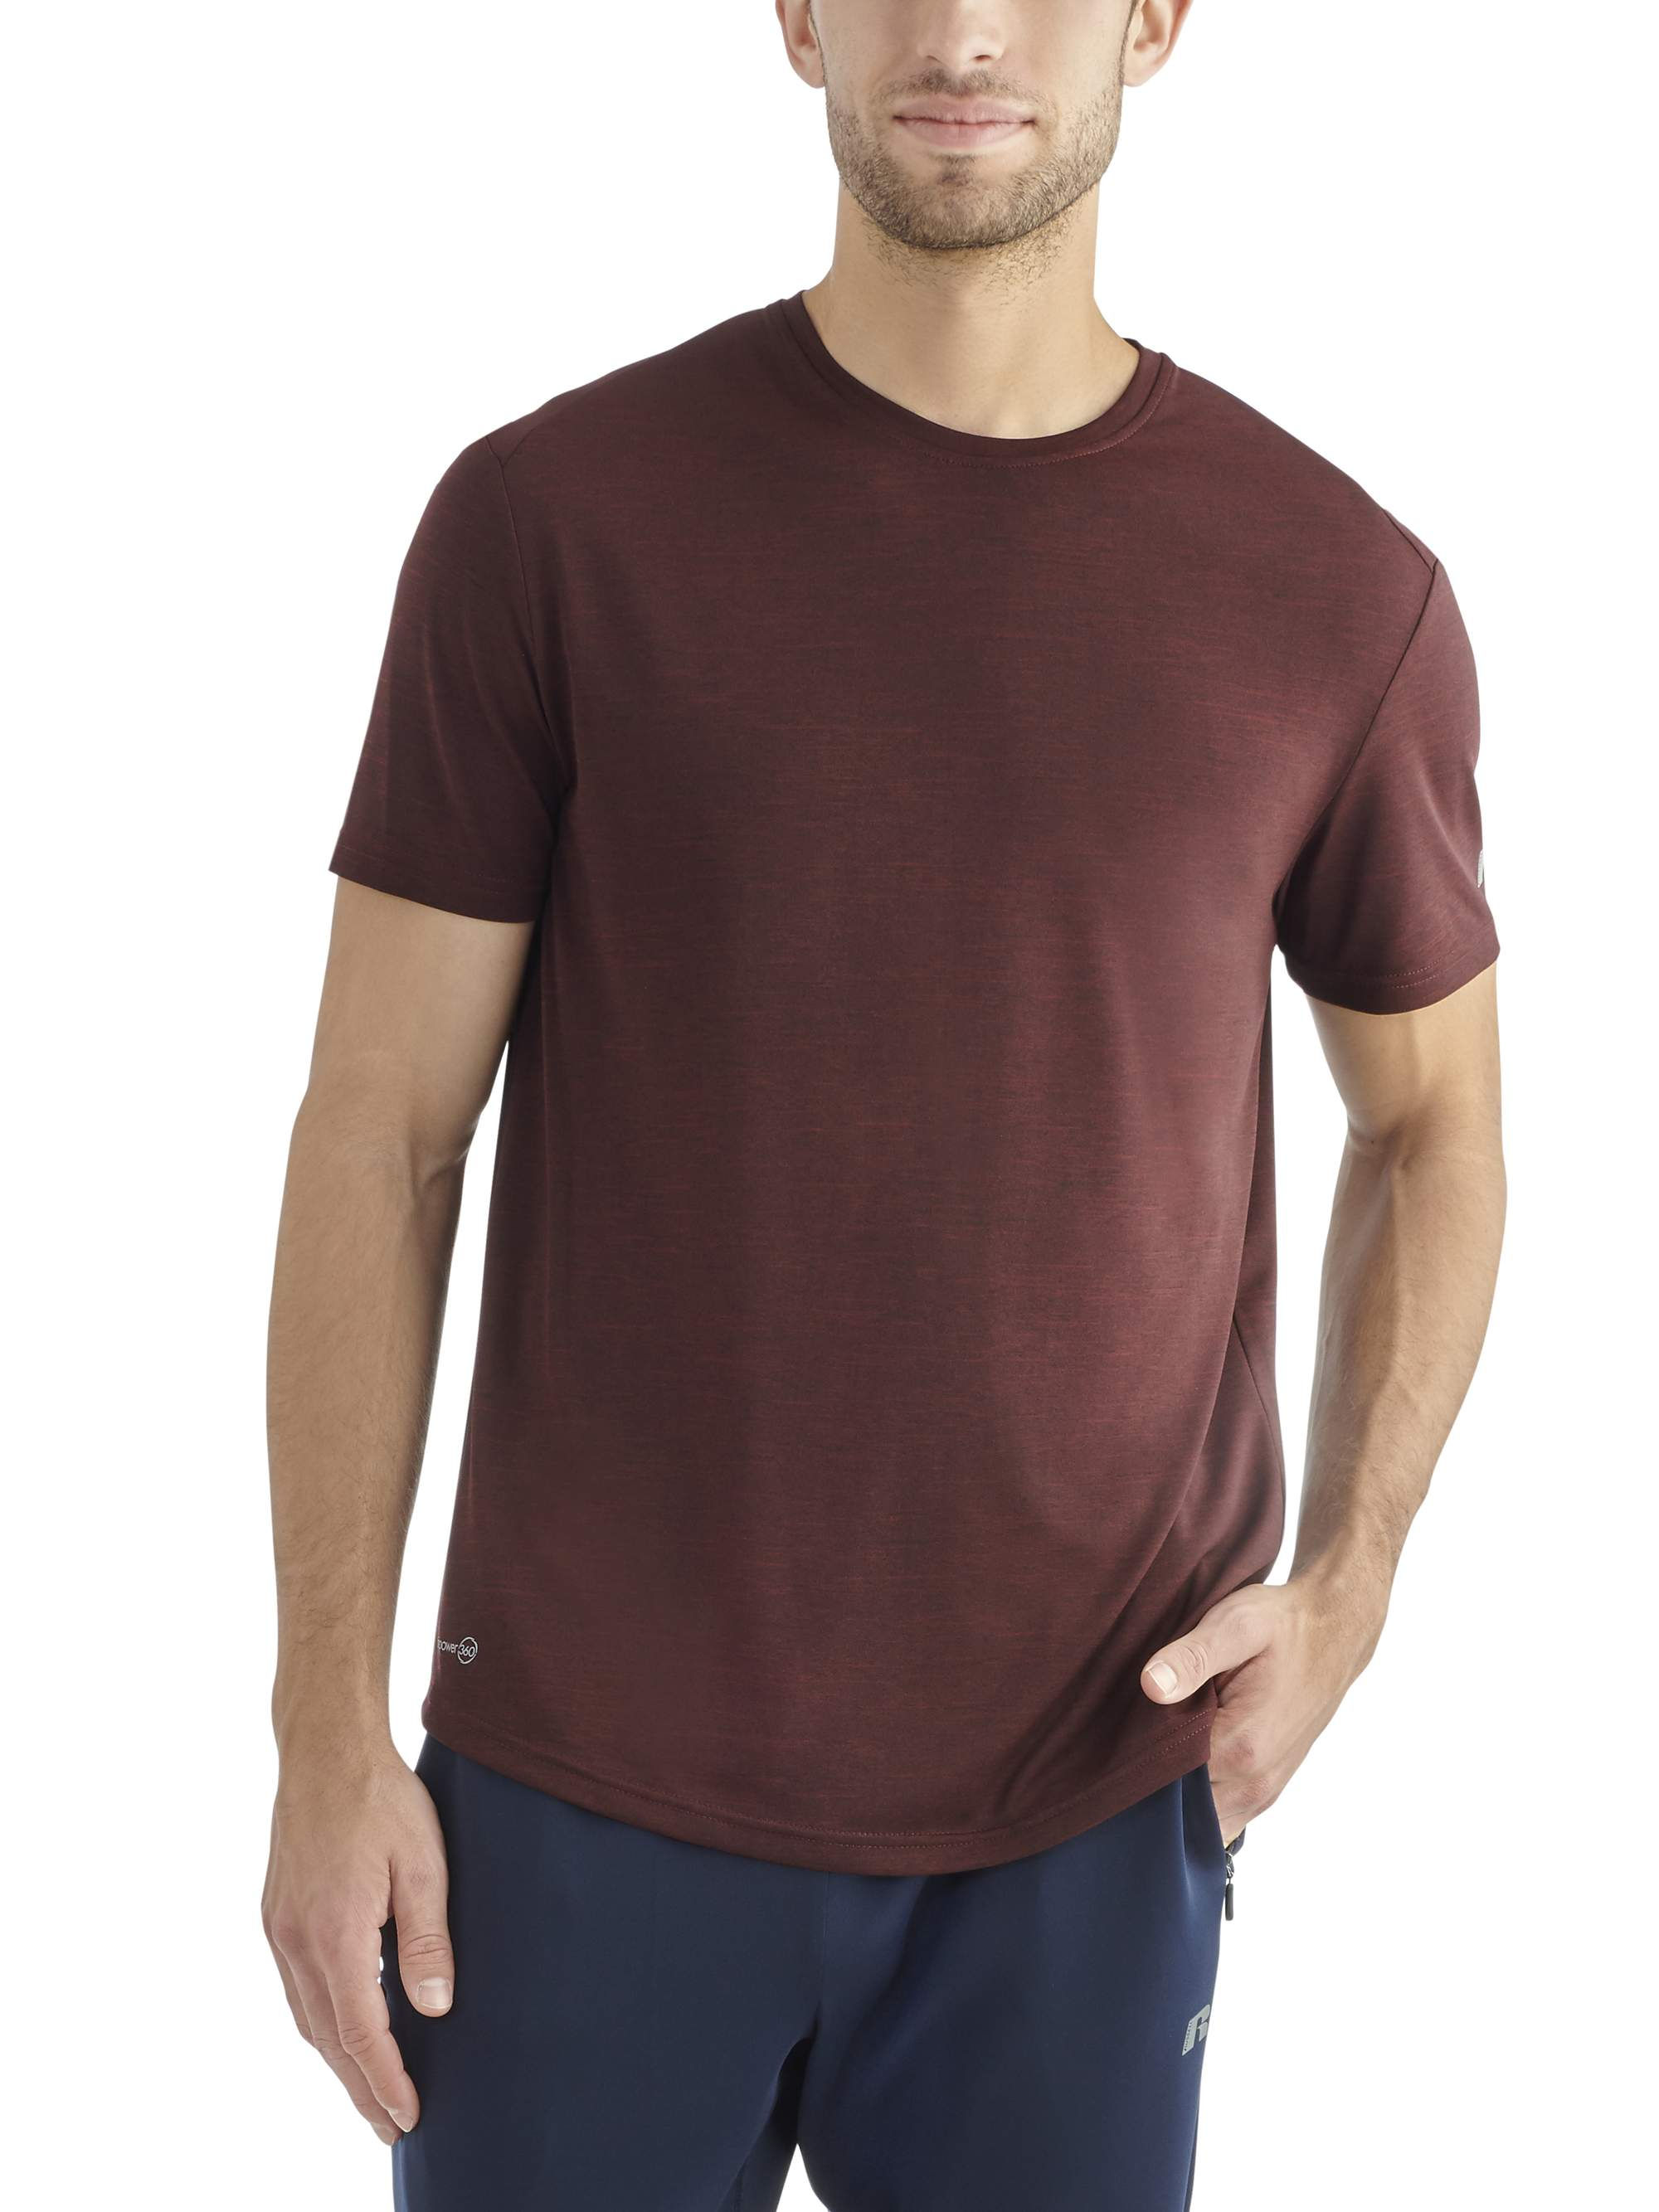 c37072e2 Russell - Russell Mens Core Performance Short Sleeve Tee - Walmart.com